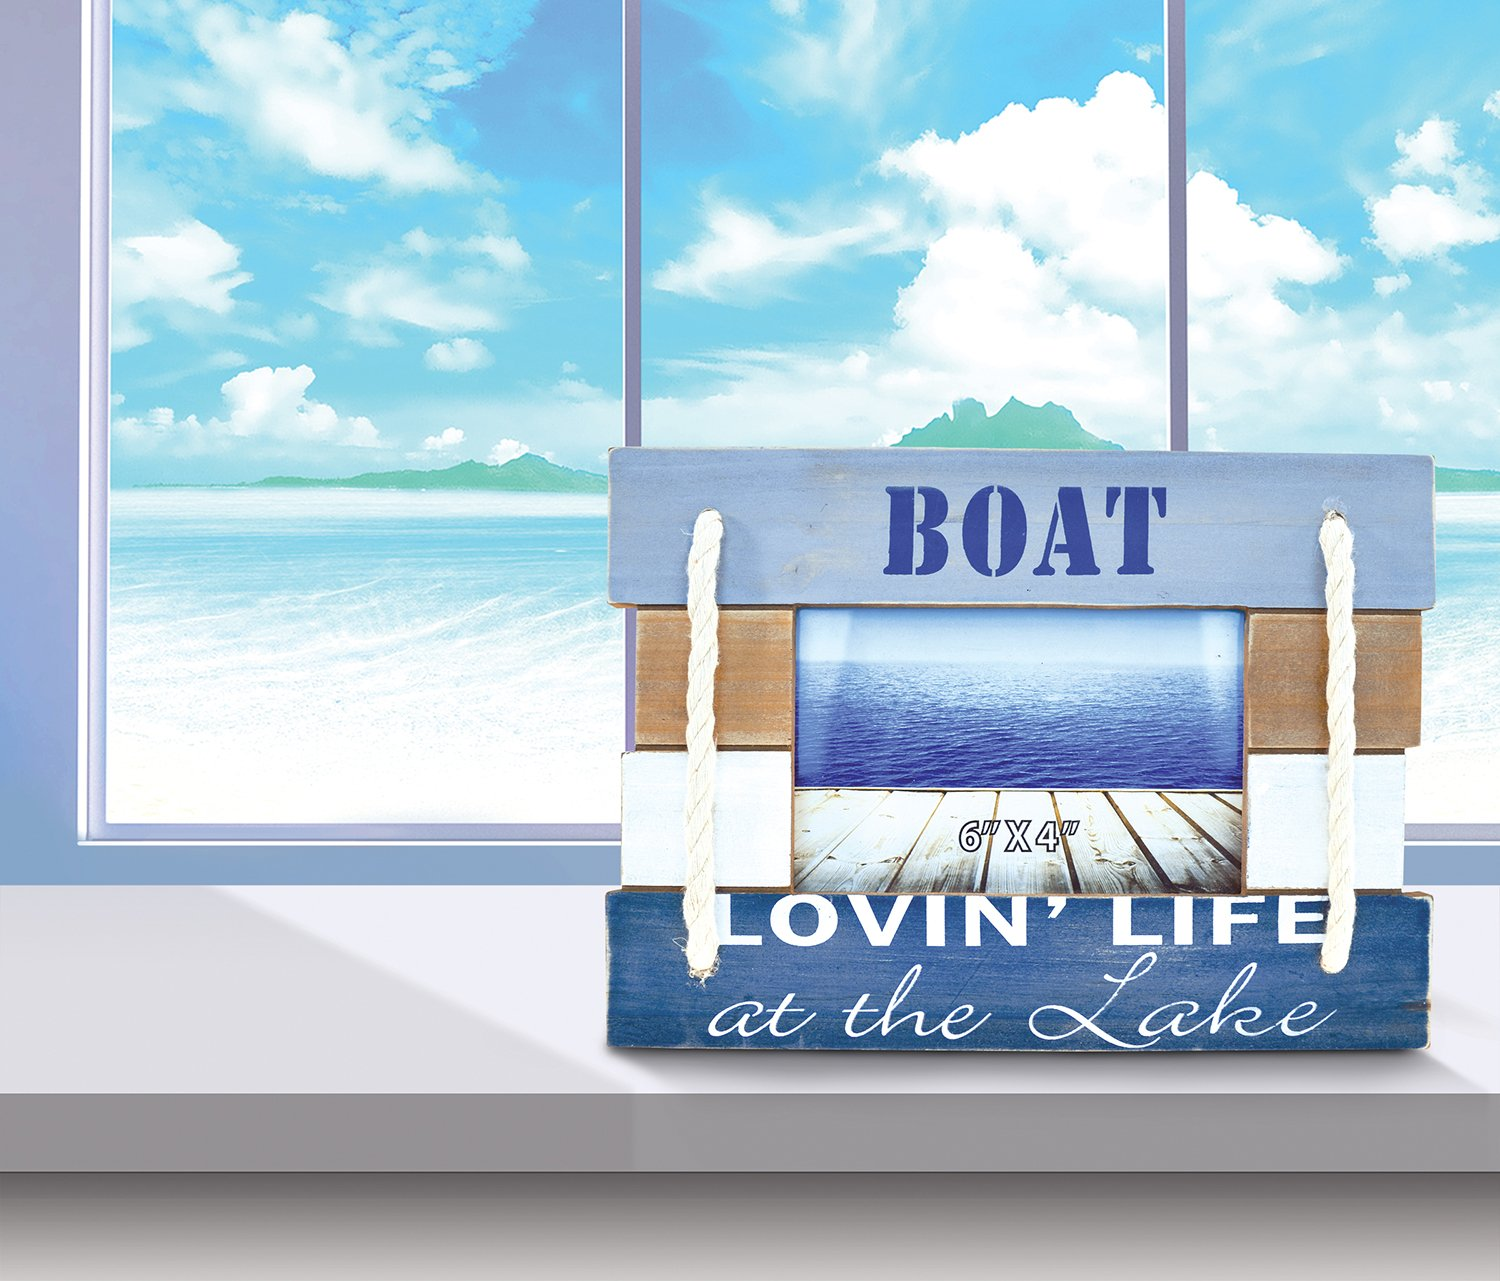 CoTa Global Nautical Coastal Wooden Atlantic ''Lovin' Life At the Lake'' Real Natural Wood Picture Holder Tabletop Photo Frame Unique Handcrafted Hand-painted Figurine Home Accent Accessories 7.5 Inch by Puzzled (Image #1)